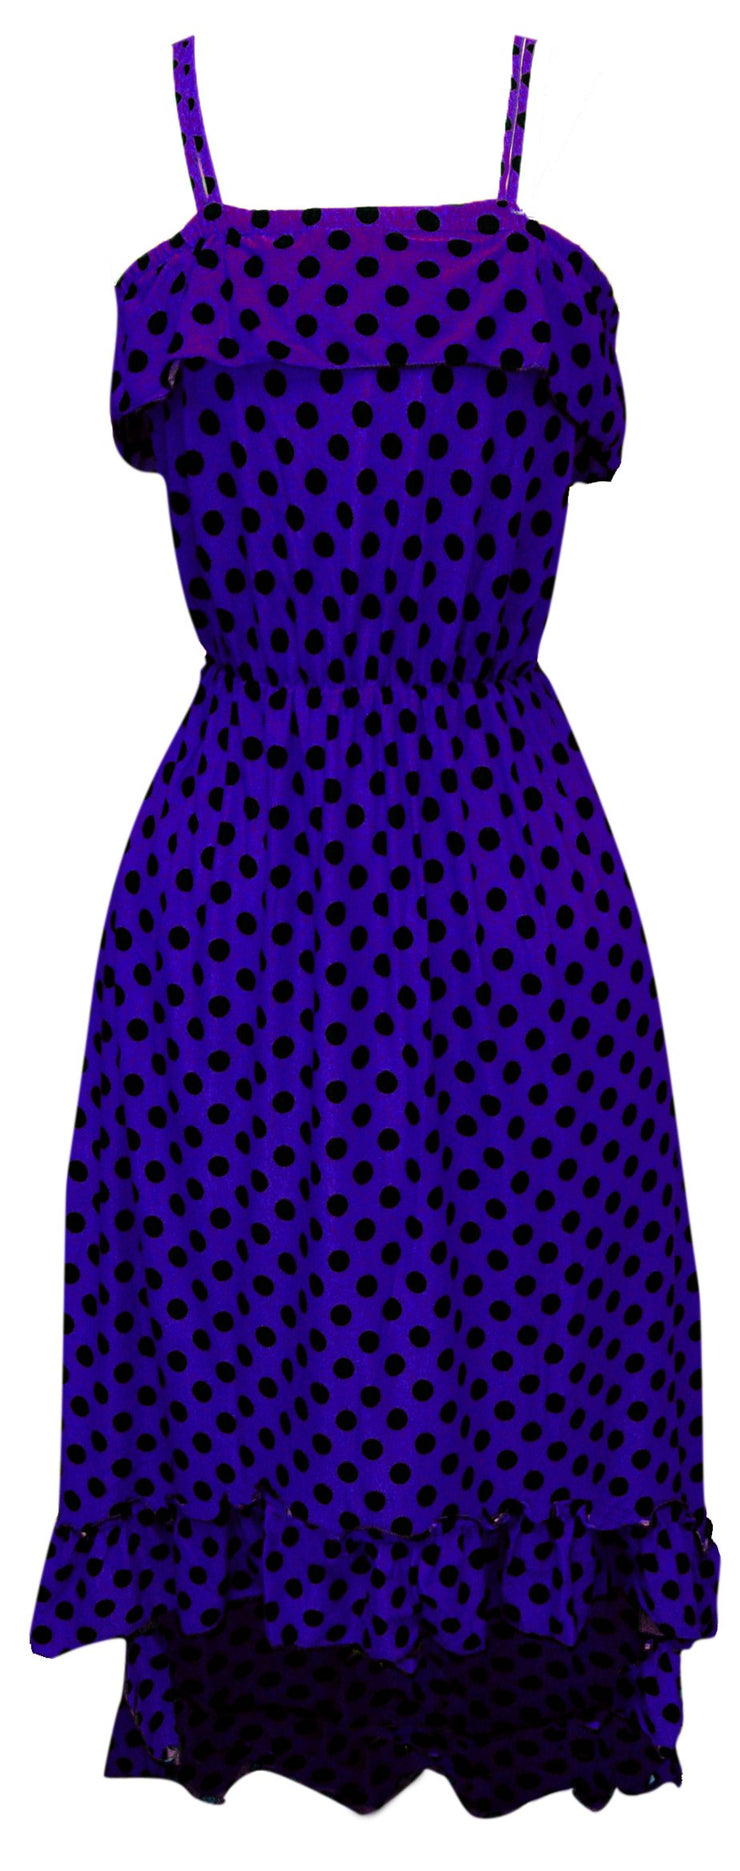 A1280-PolkaDot-Maxi-Dress-Viol-BLK-XL-SM